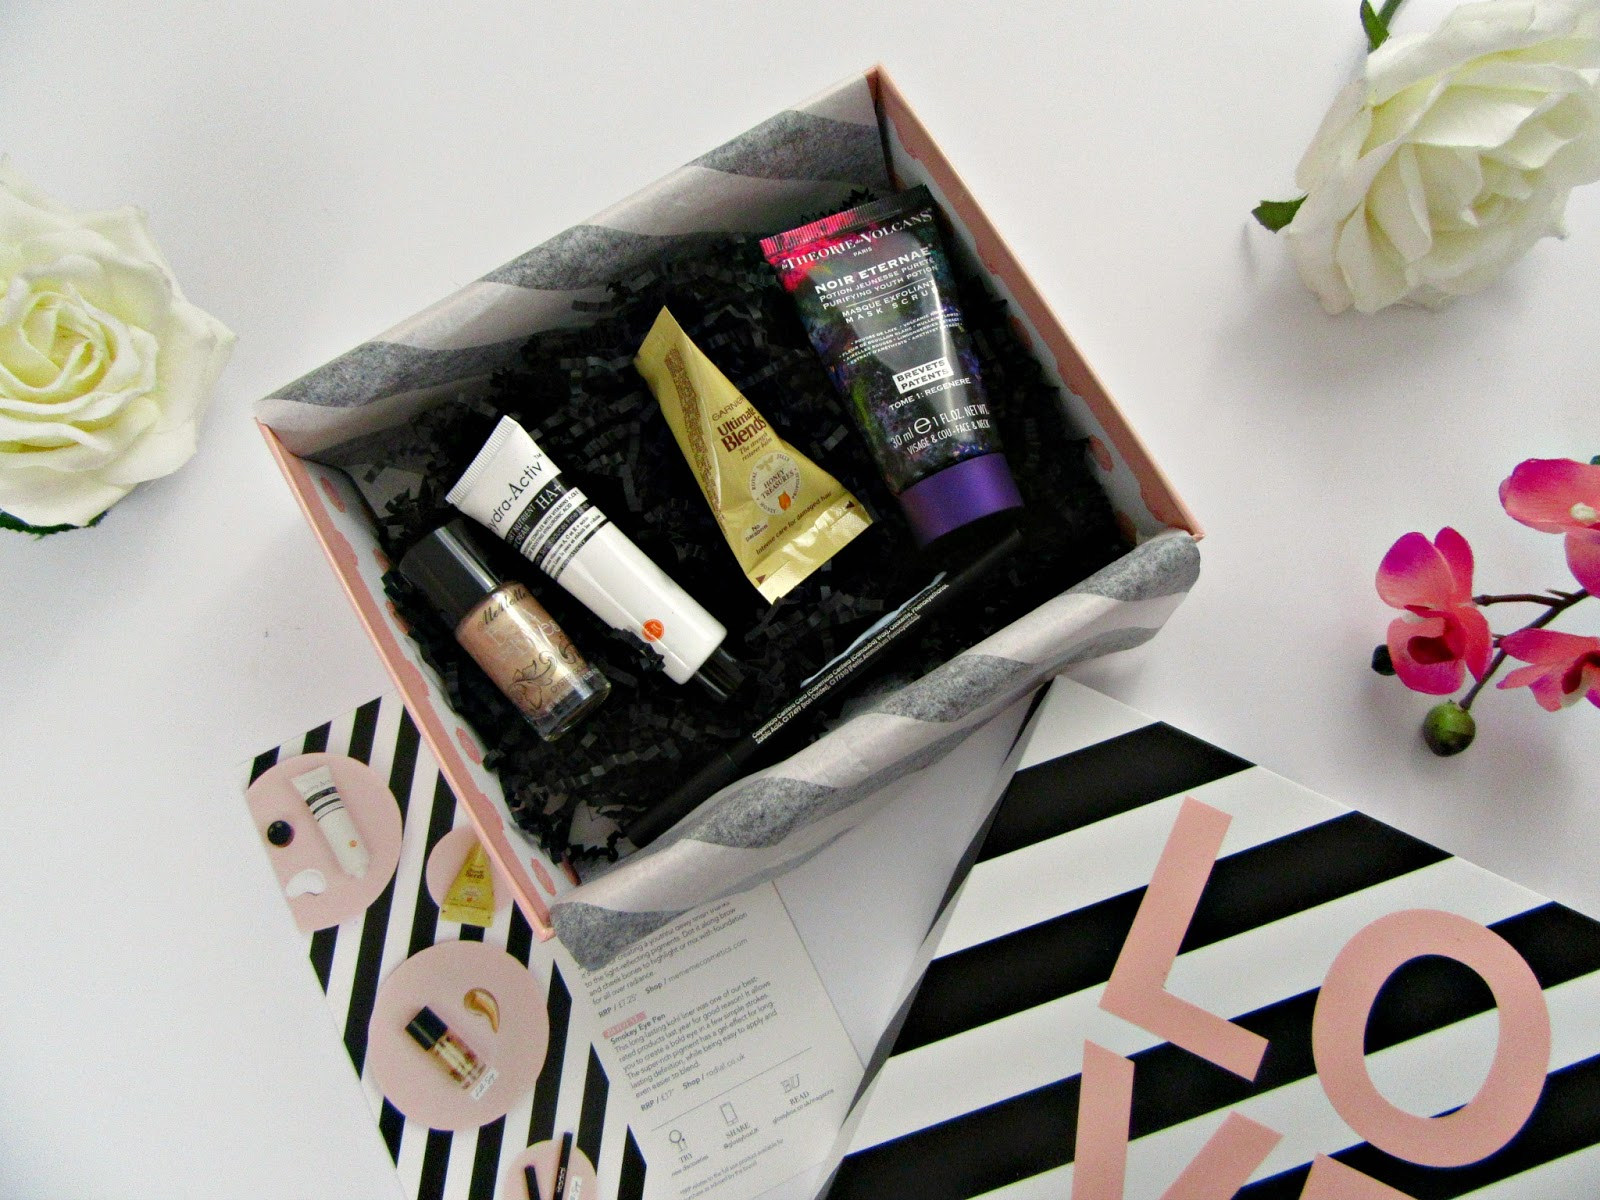 February 2017 Glossybox contents